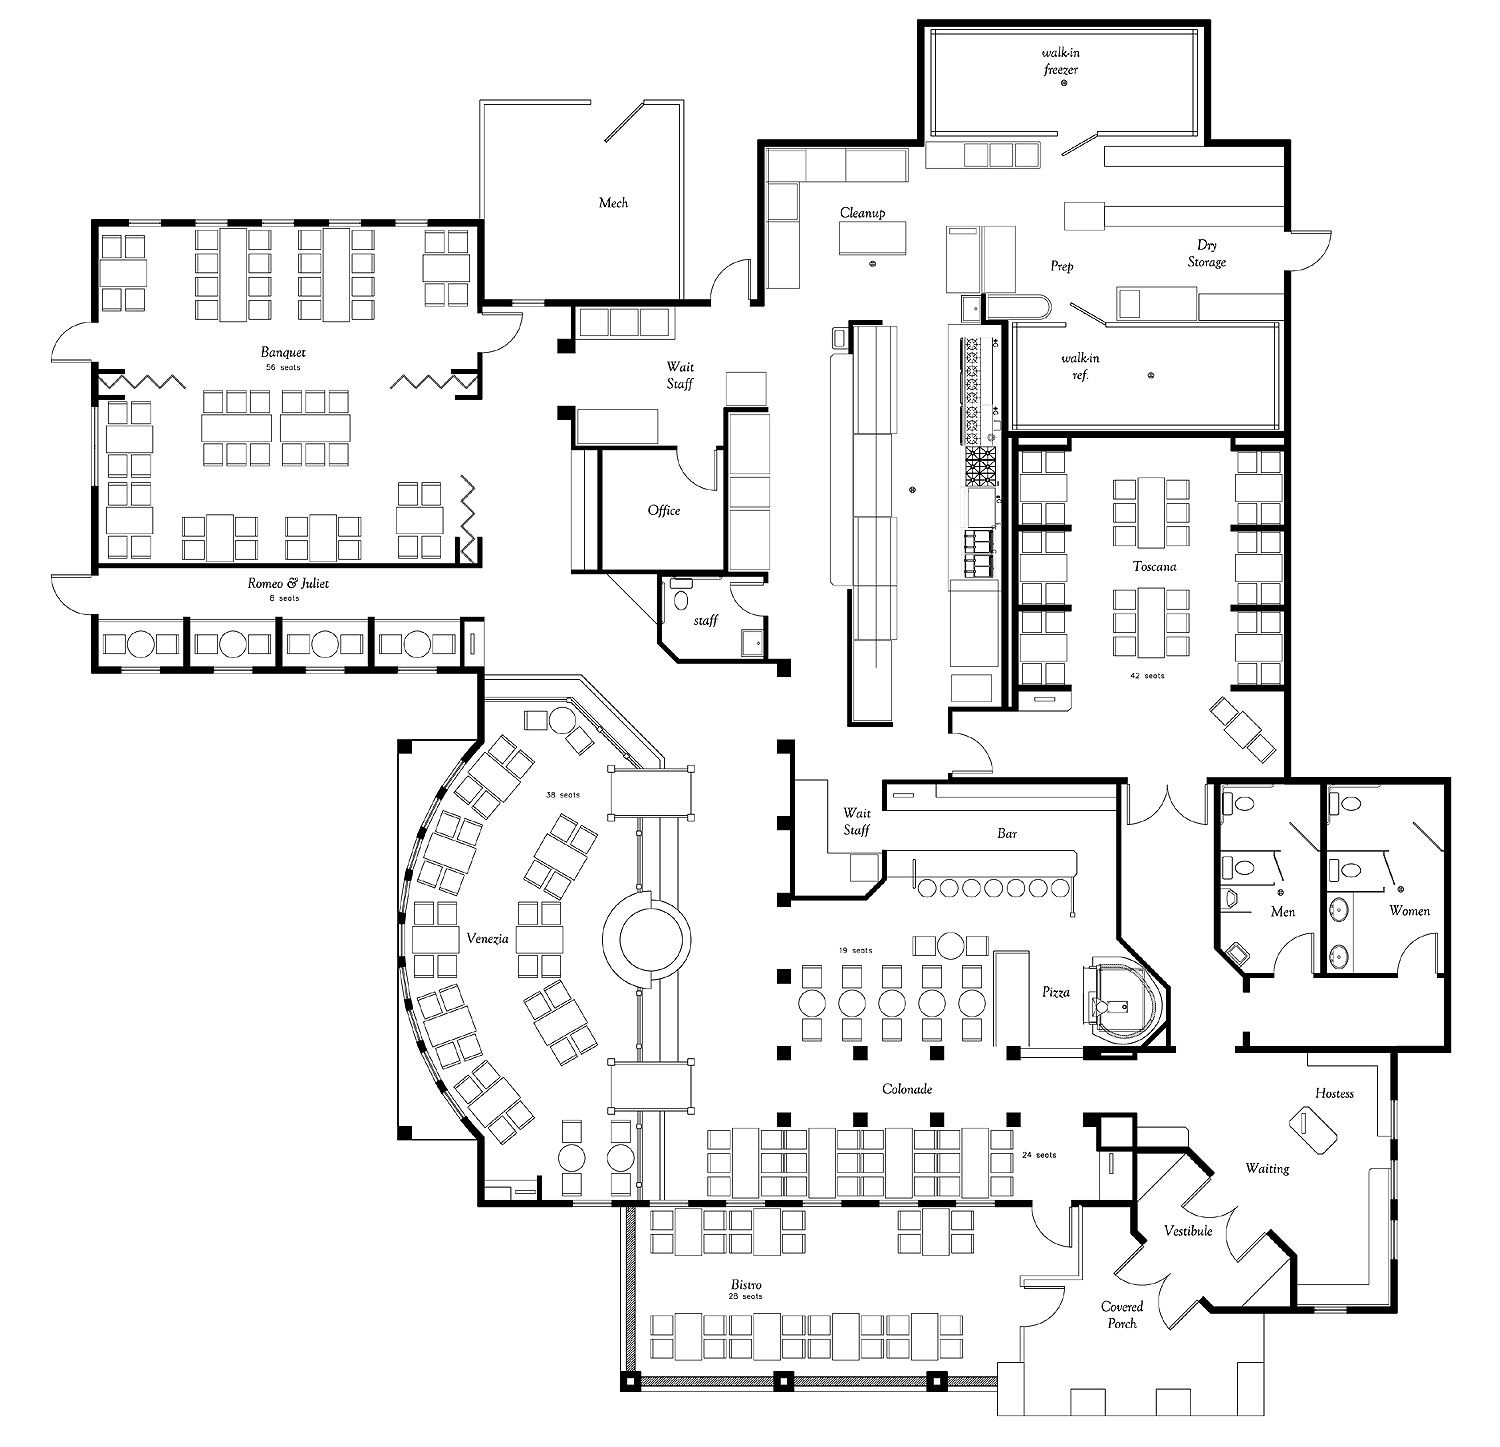 Home--Floorplans: Commercial